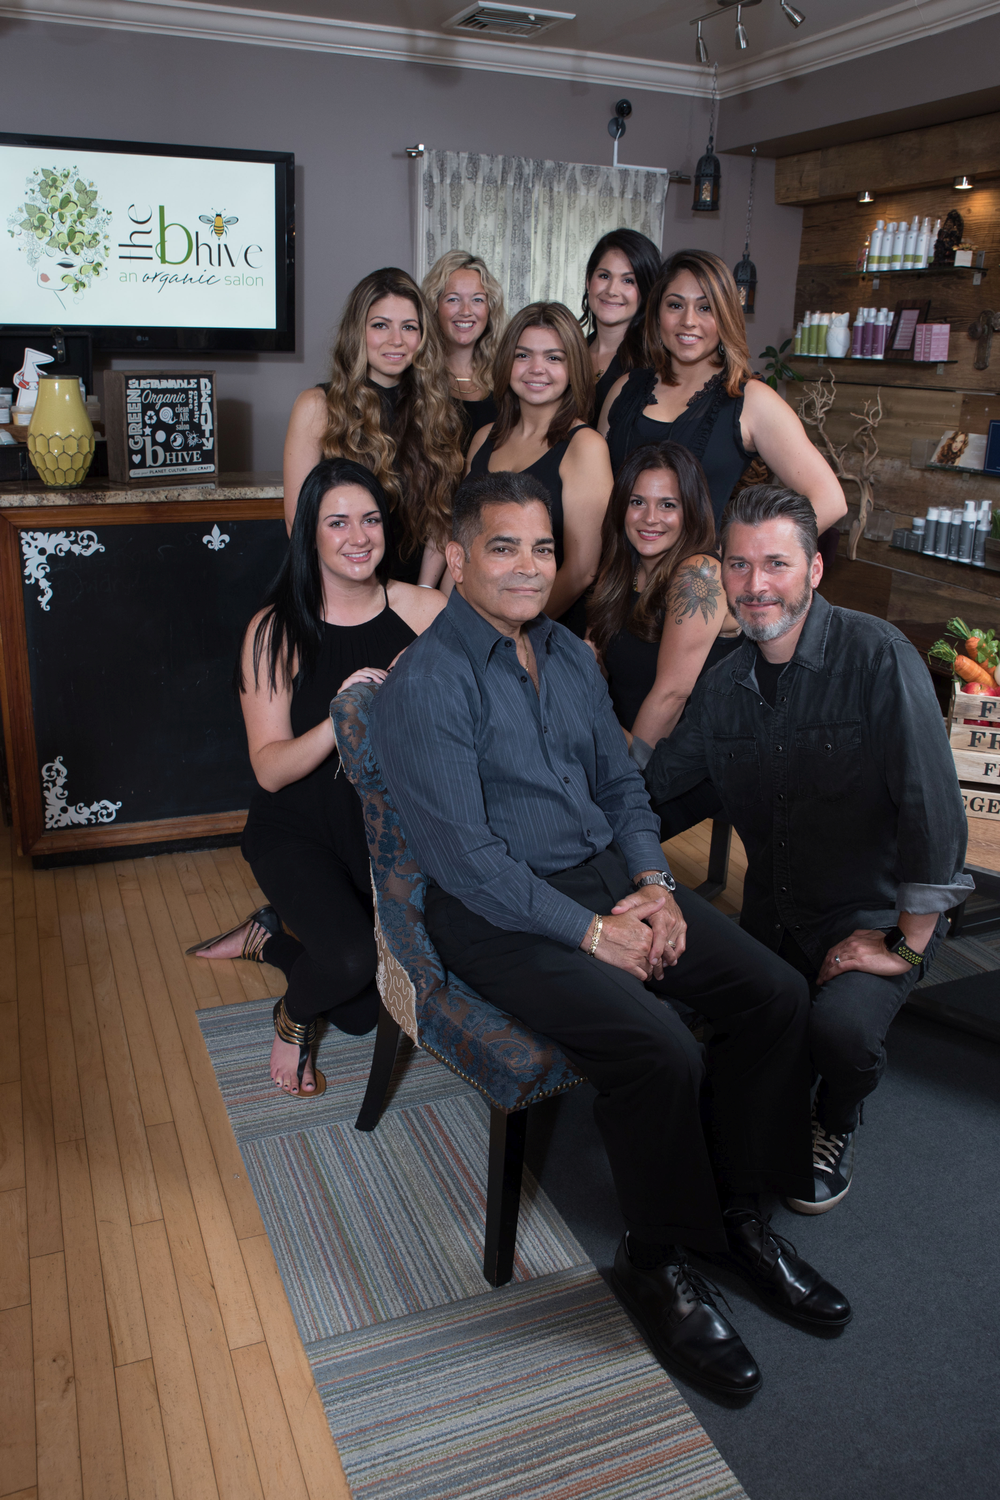 The team from The B Hive Organic Salon, in Hilsdale, NJ, organized a Wine and Spirits event to benefit Justice and Soul.